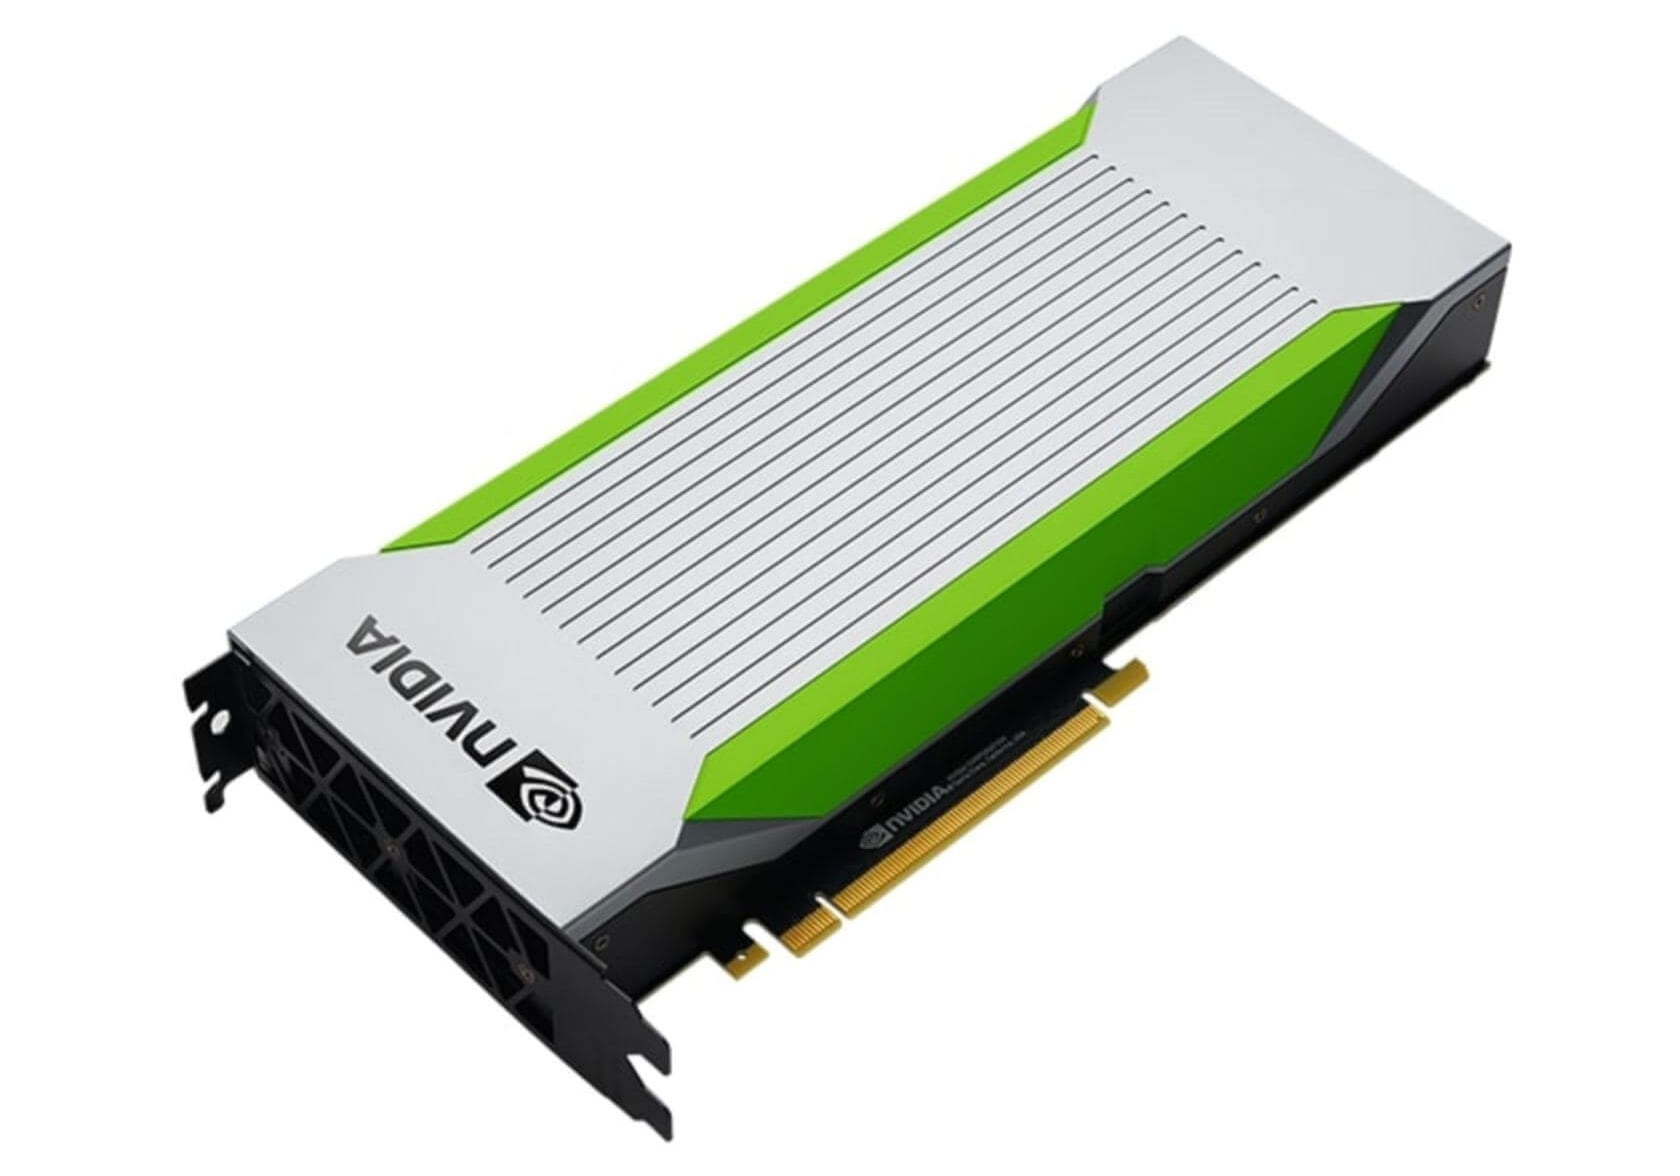 Nvidia's $6,000 Quadro RTX 8000 can now be passively cooled